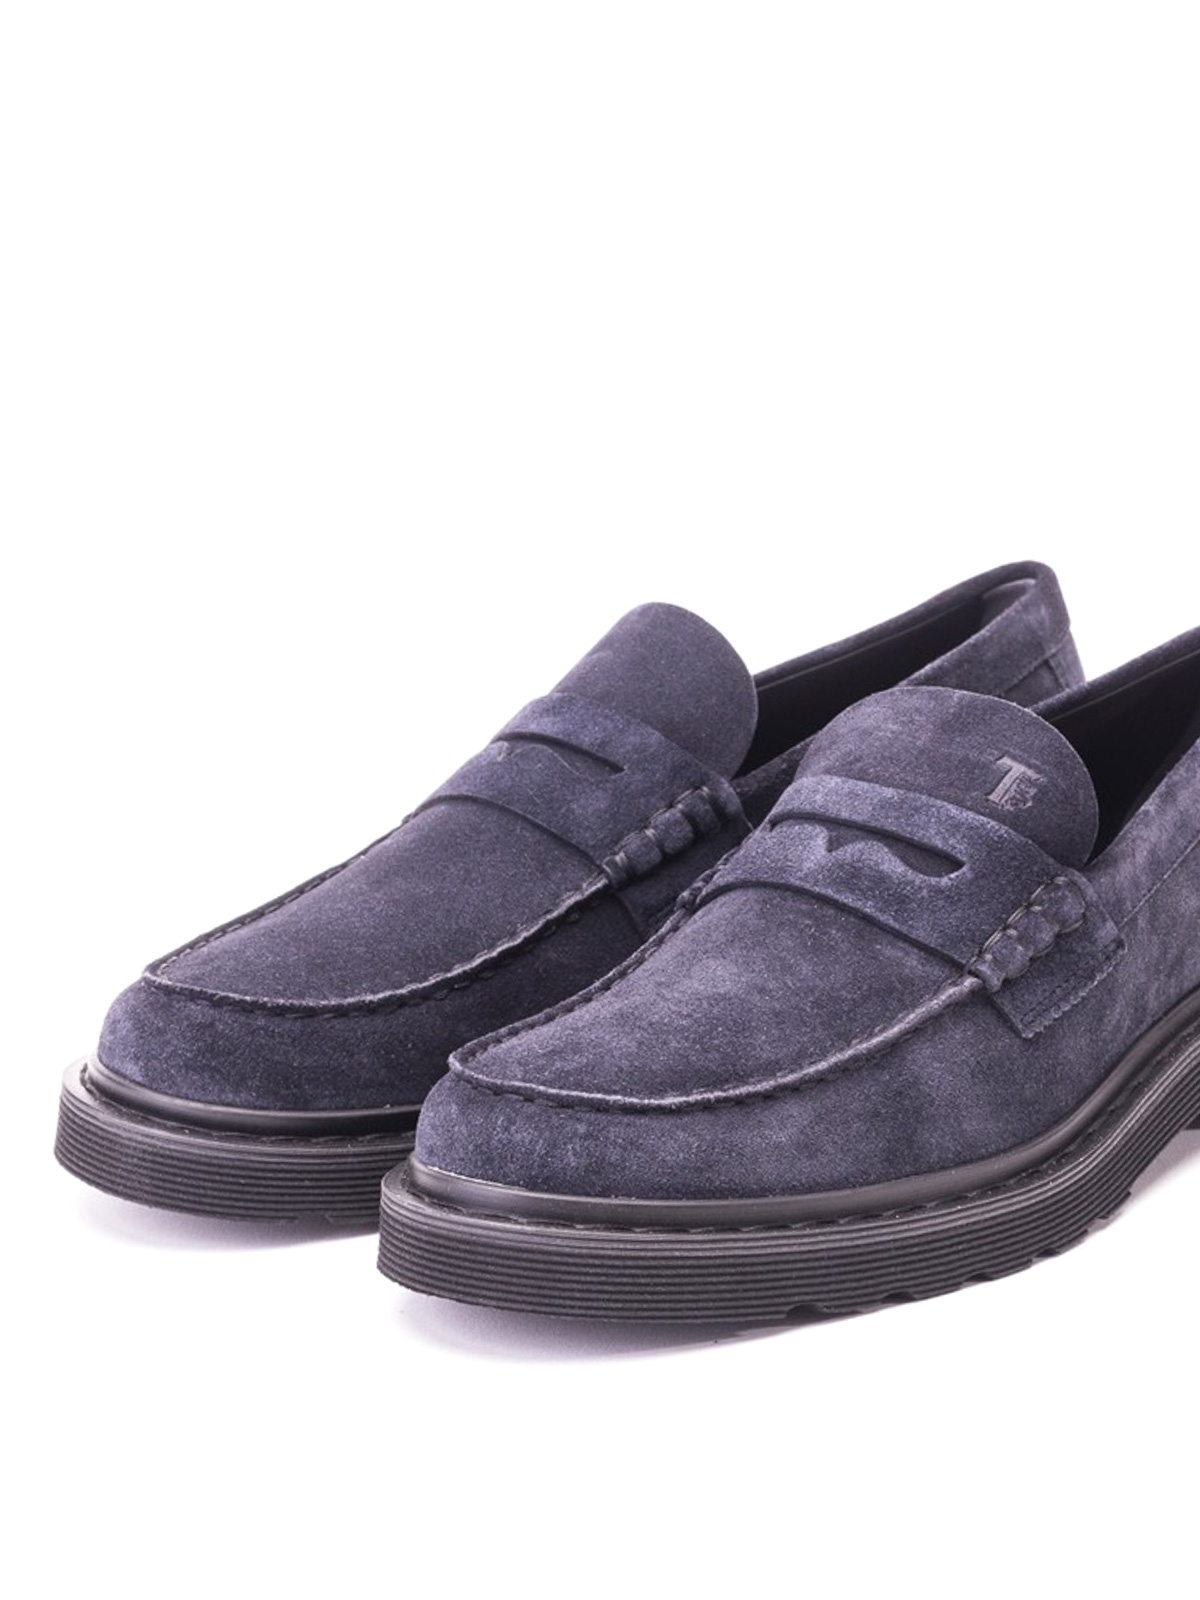 Lug sole blue suede loafers